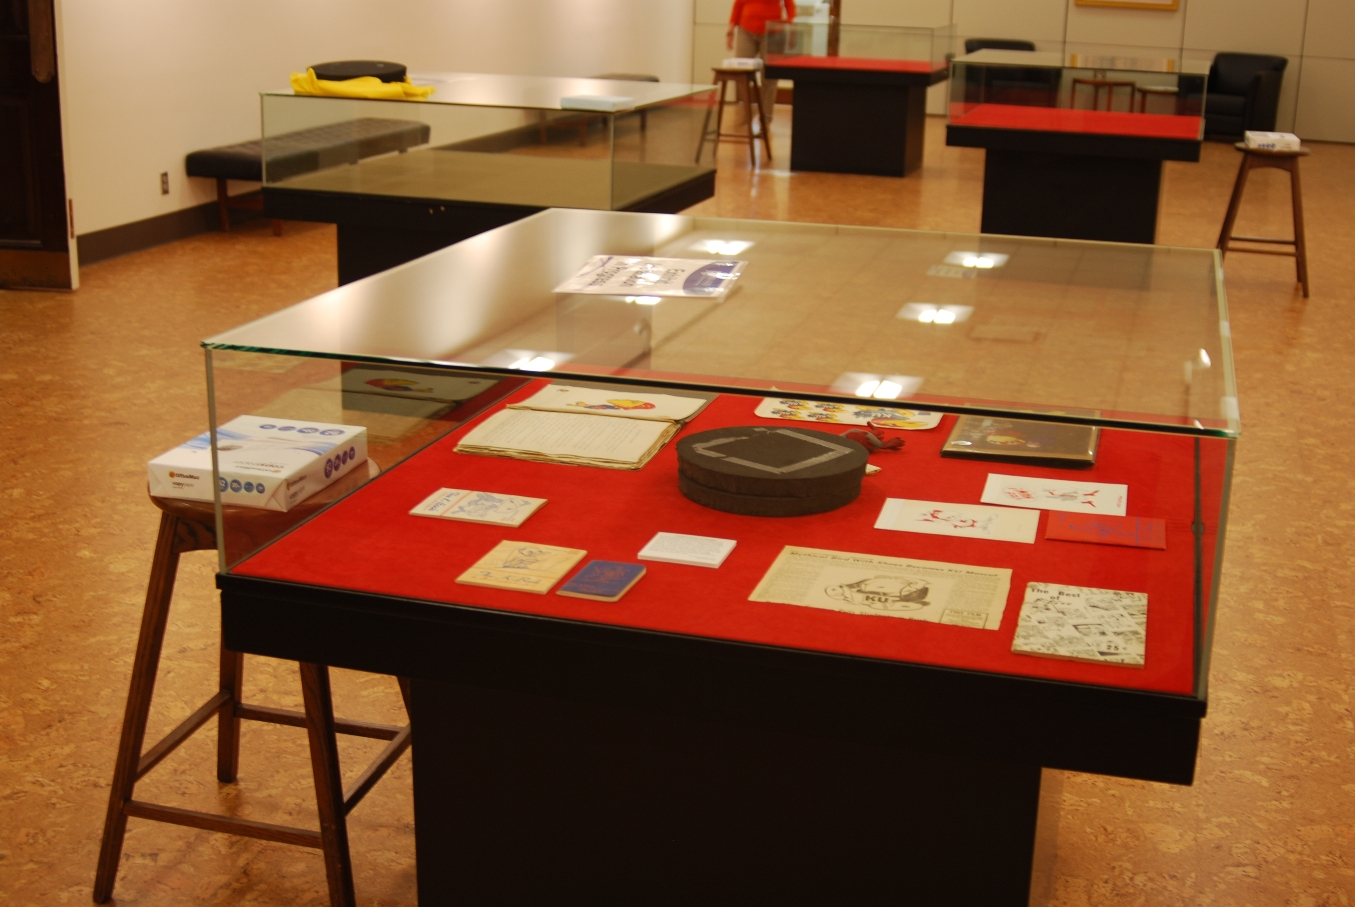 Photograph of initial layout of materials in the case